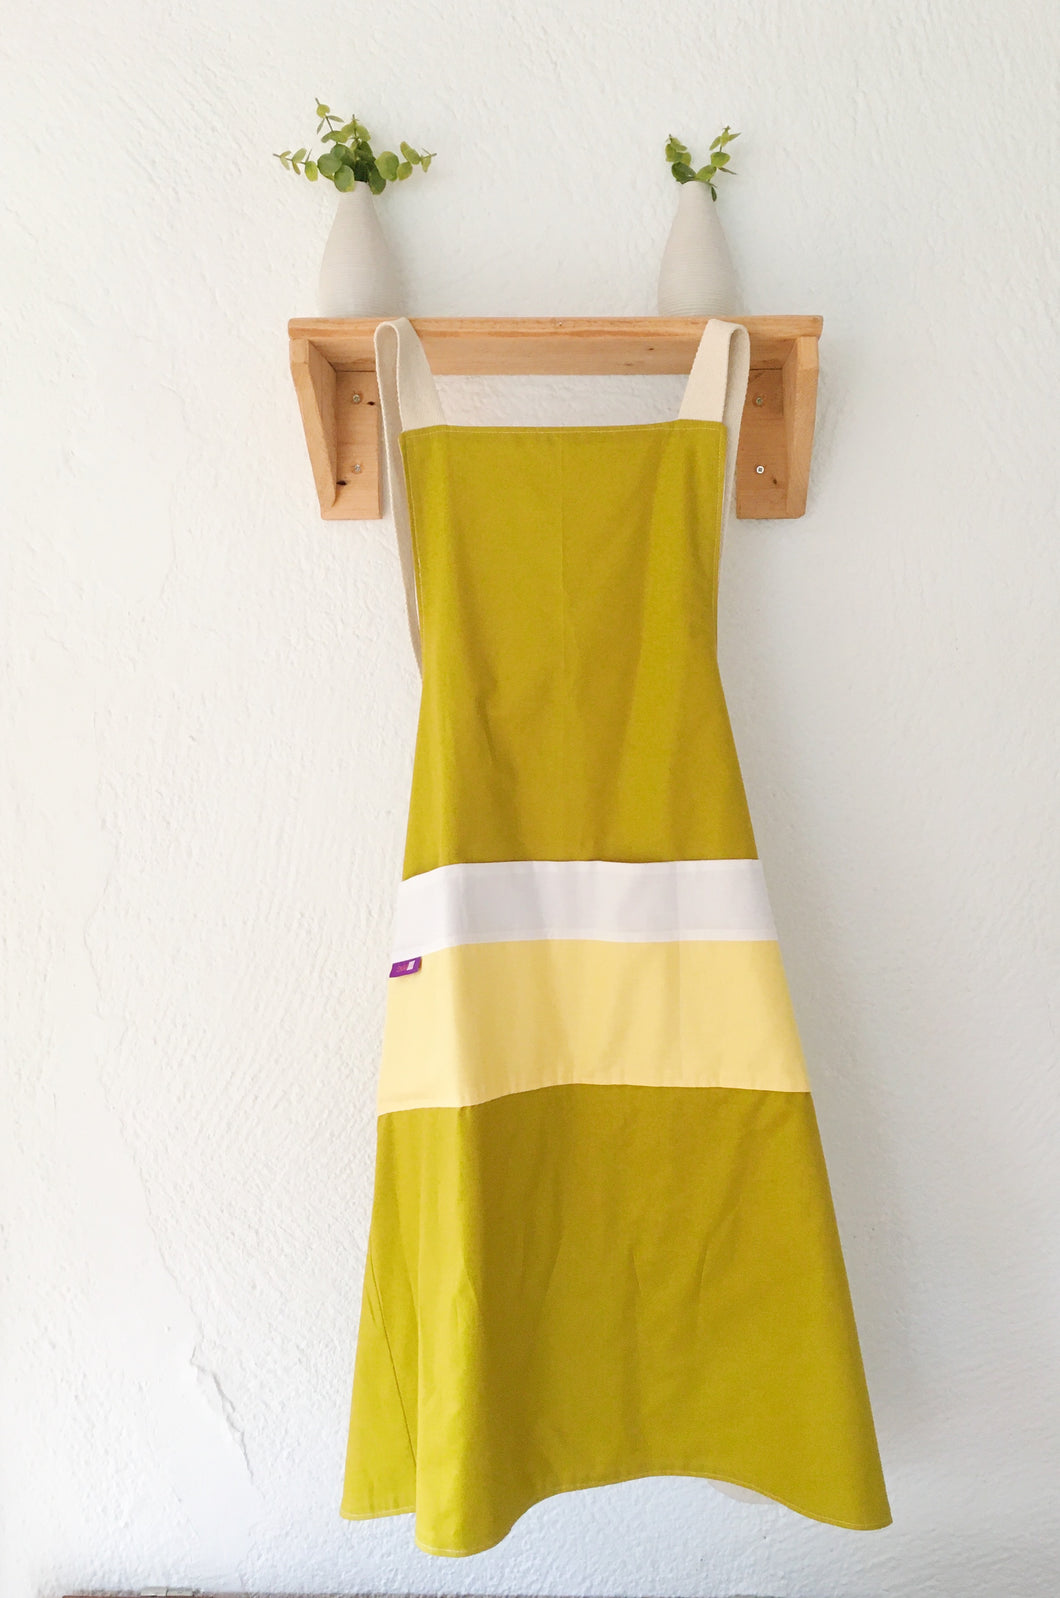 Apron Scandinavian design golden green, No ties